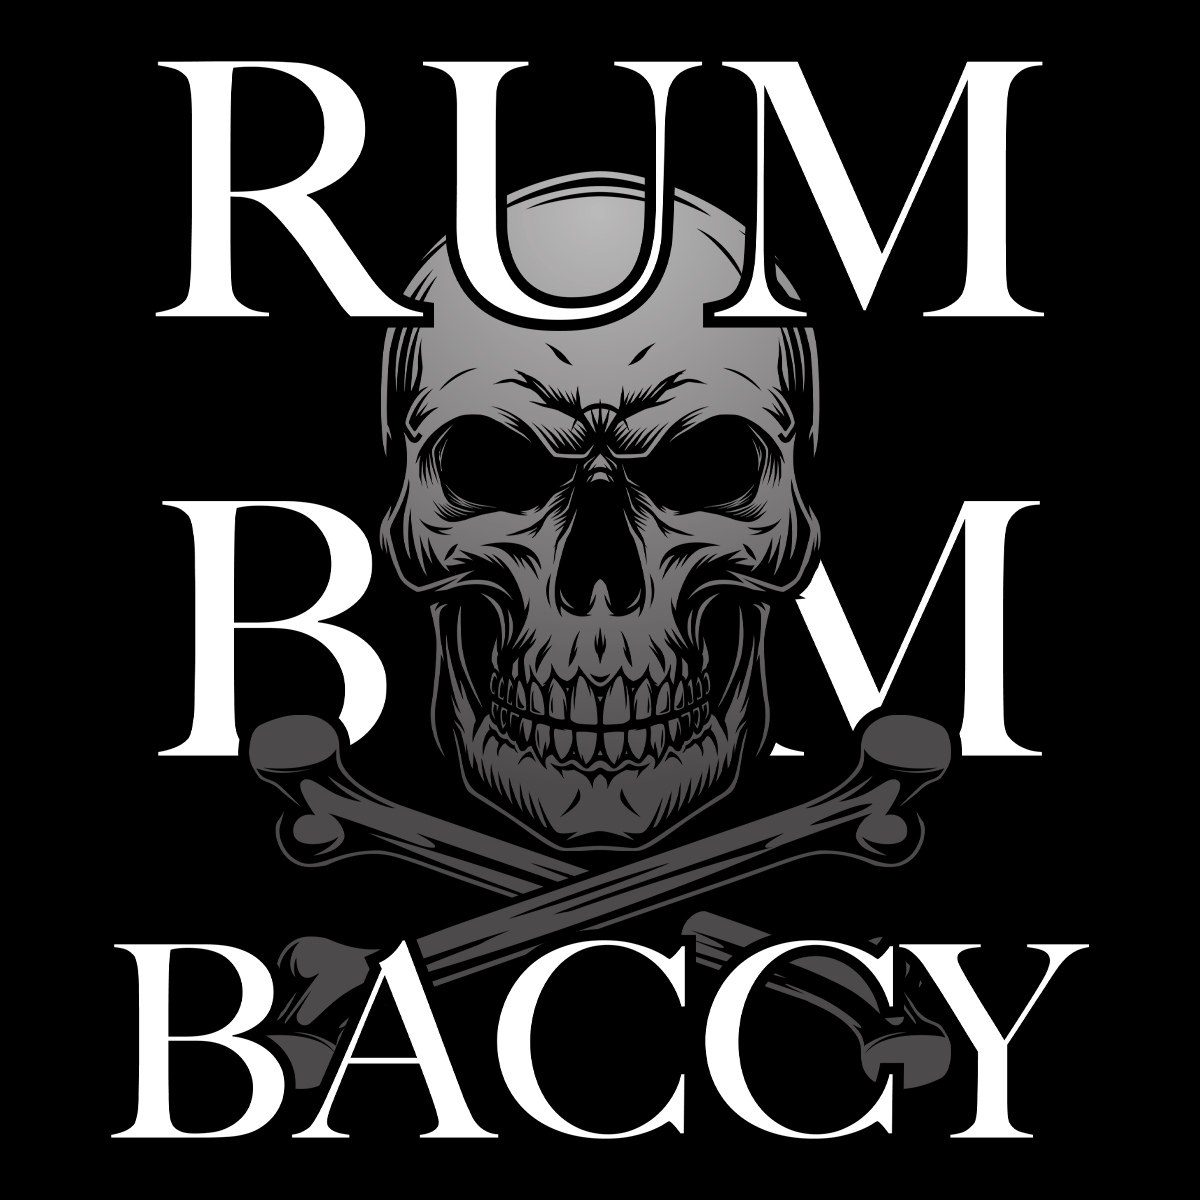 Rum Bum And Baccy Unisex T Shirt